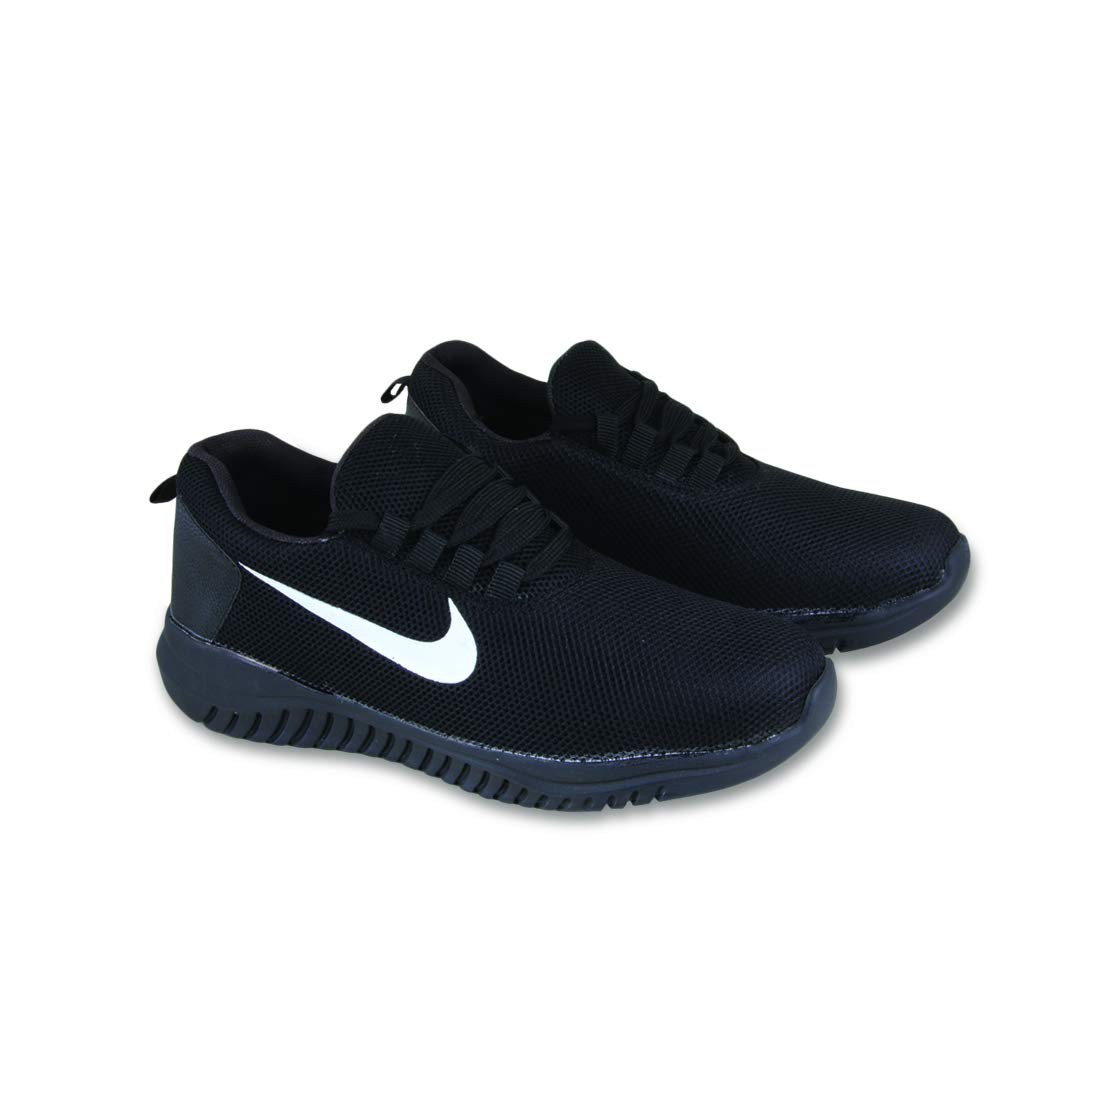 FABBMATE Black Sports Shoes for Men